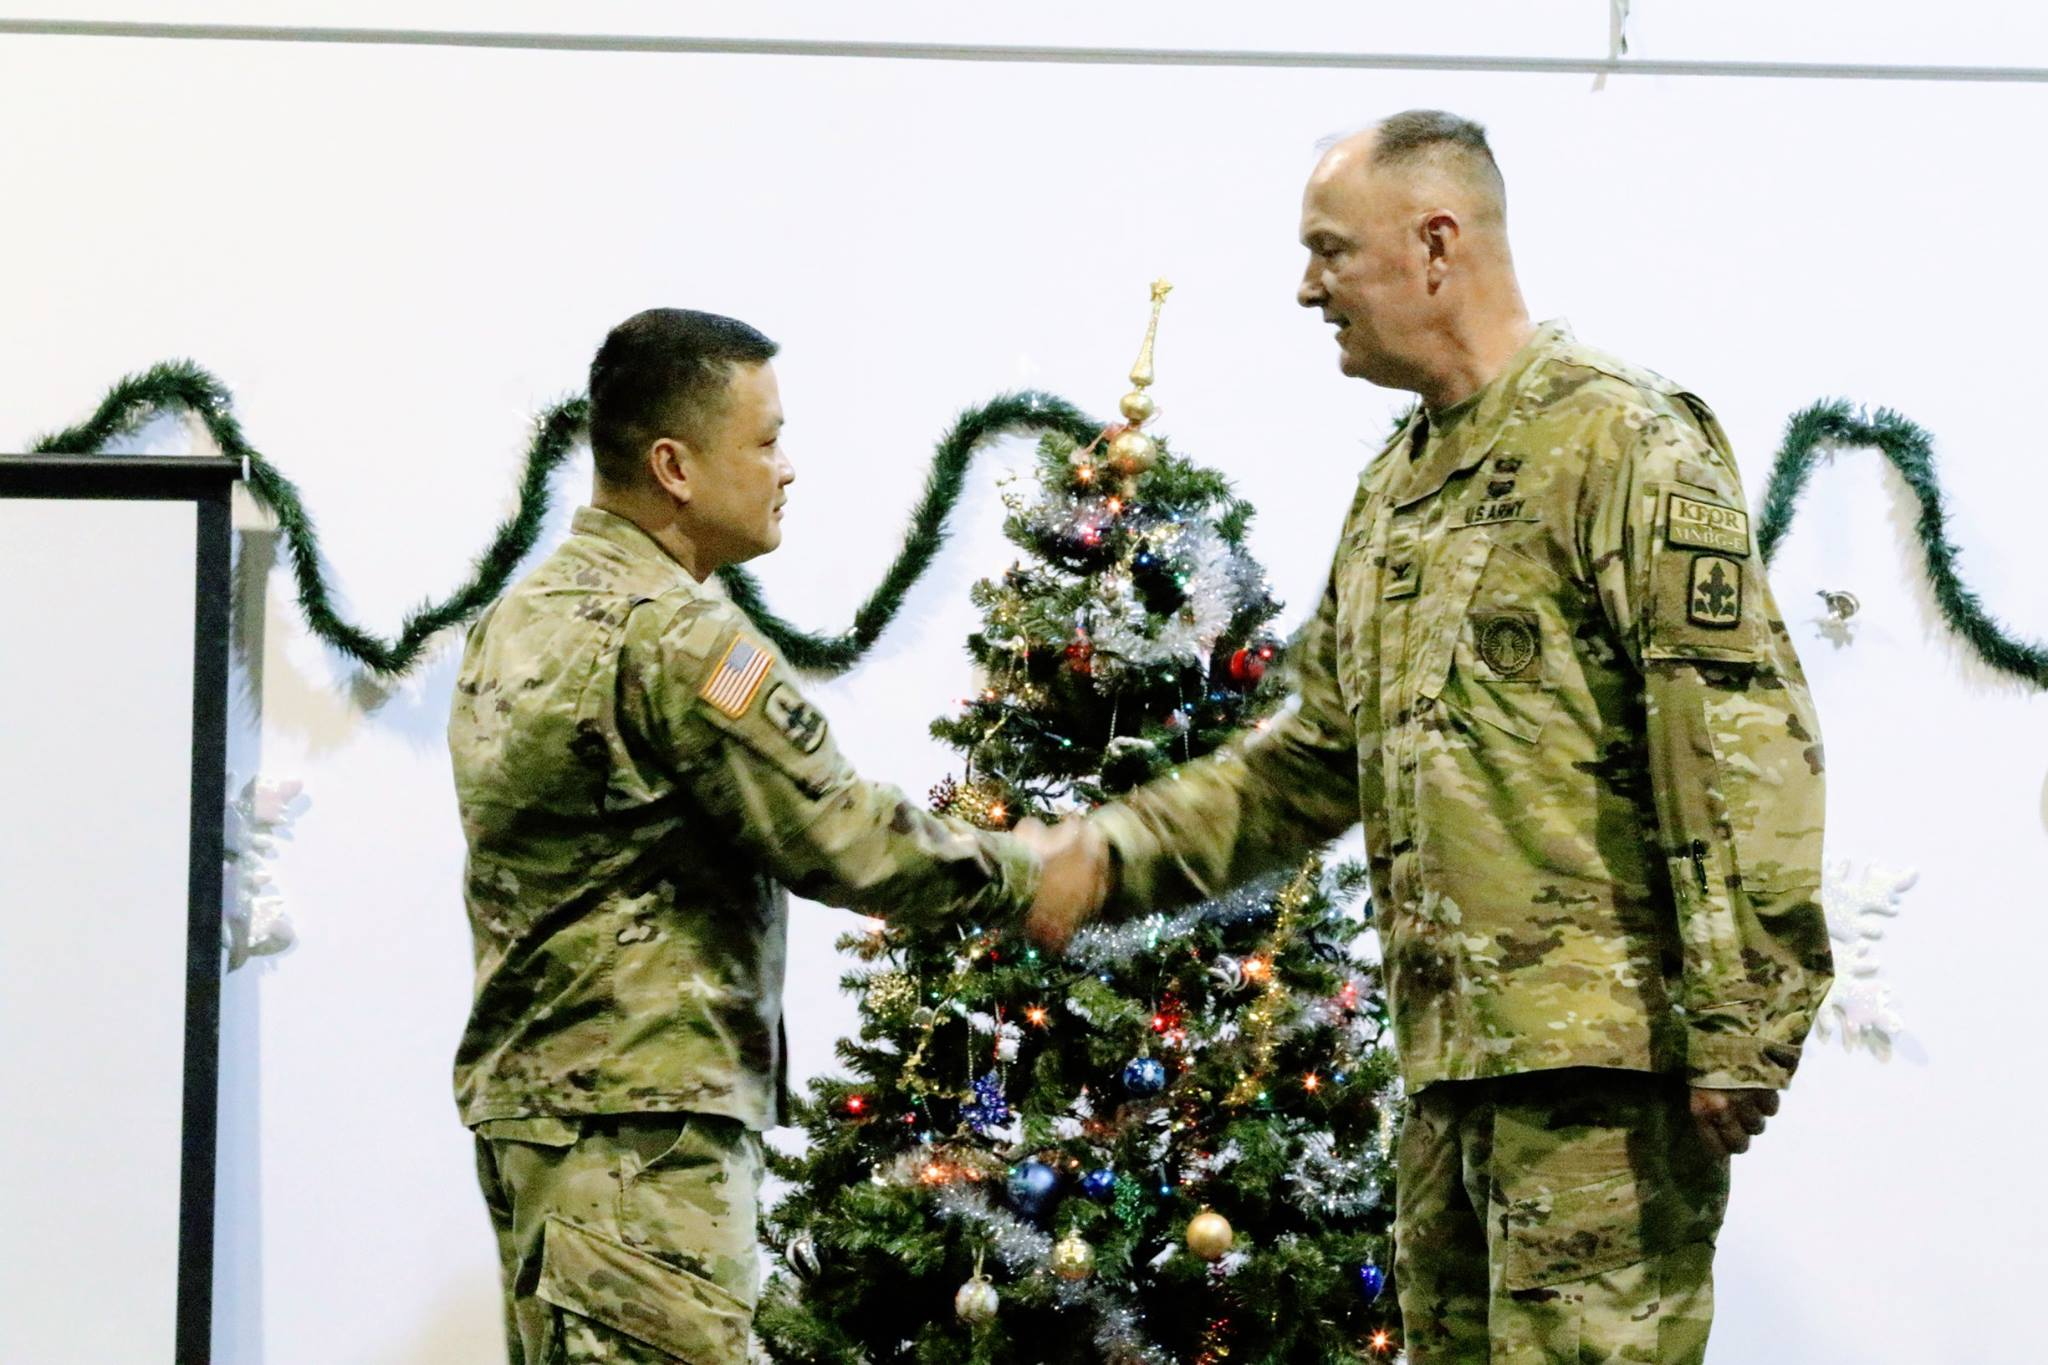 LTC Loren Penney Promoted to Colonel | Retiree News